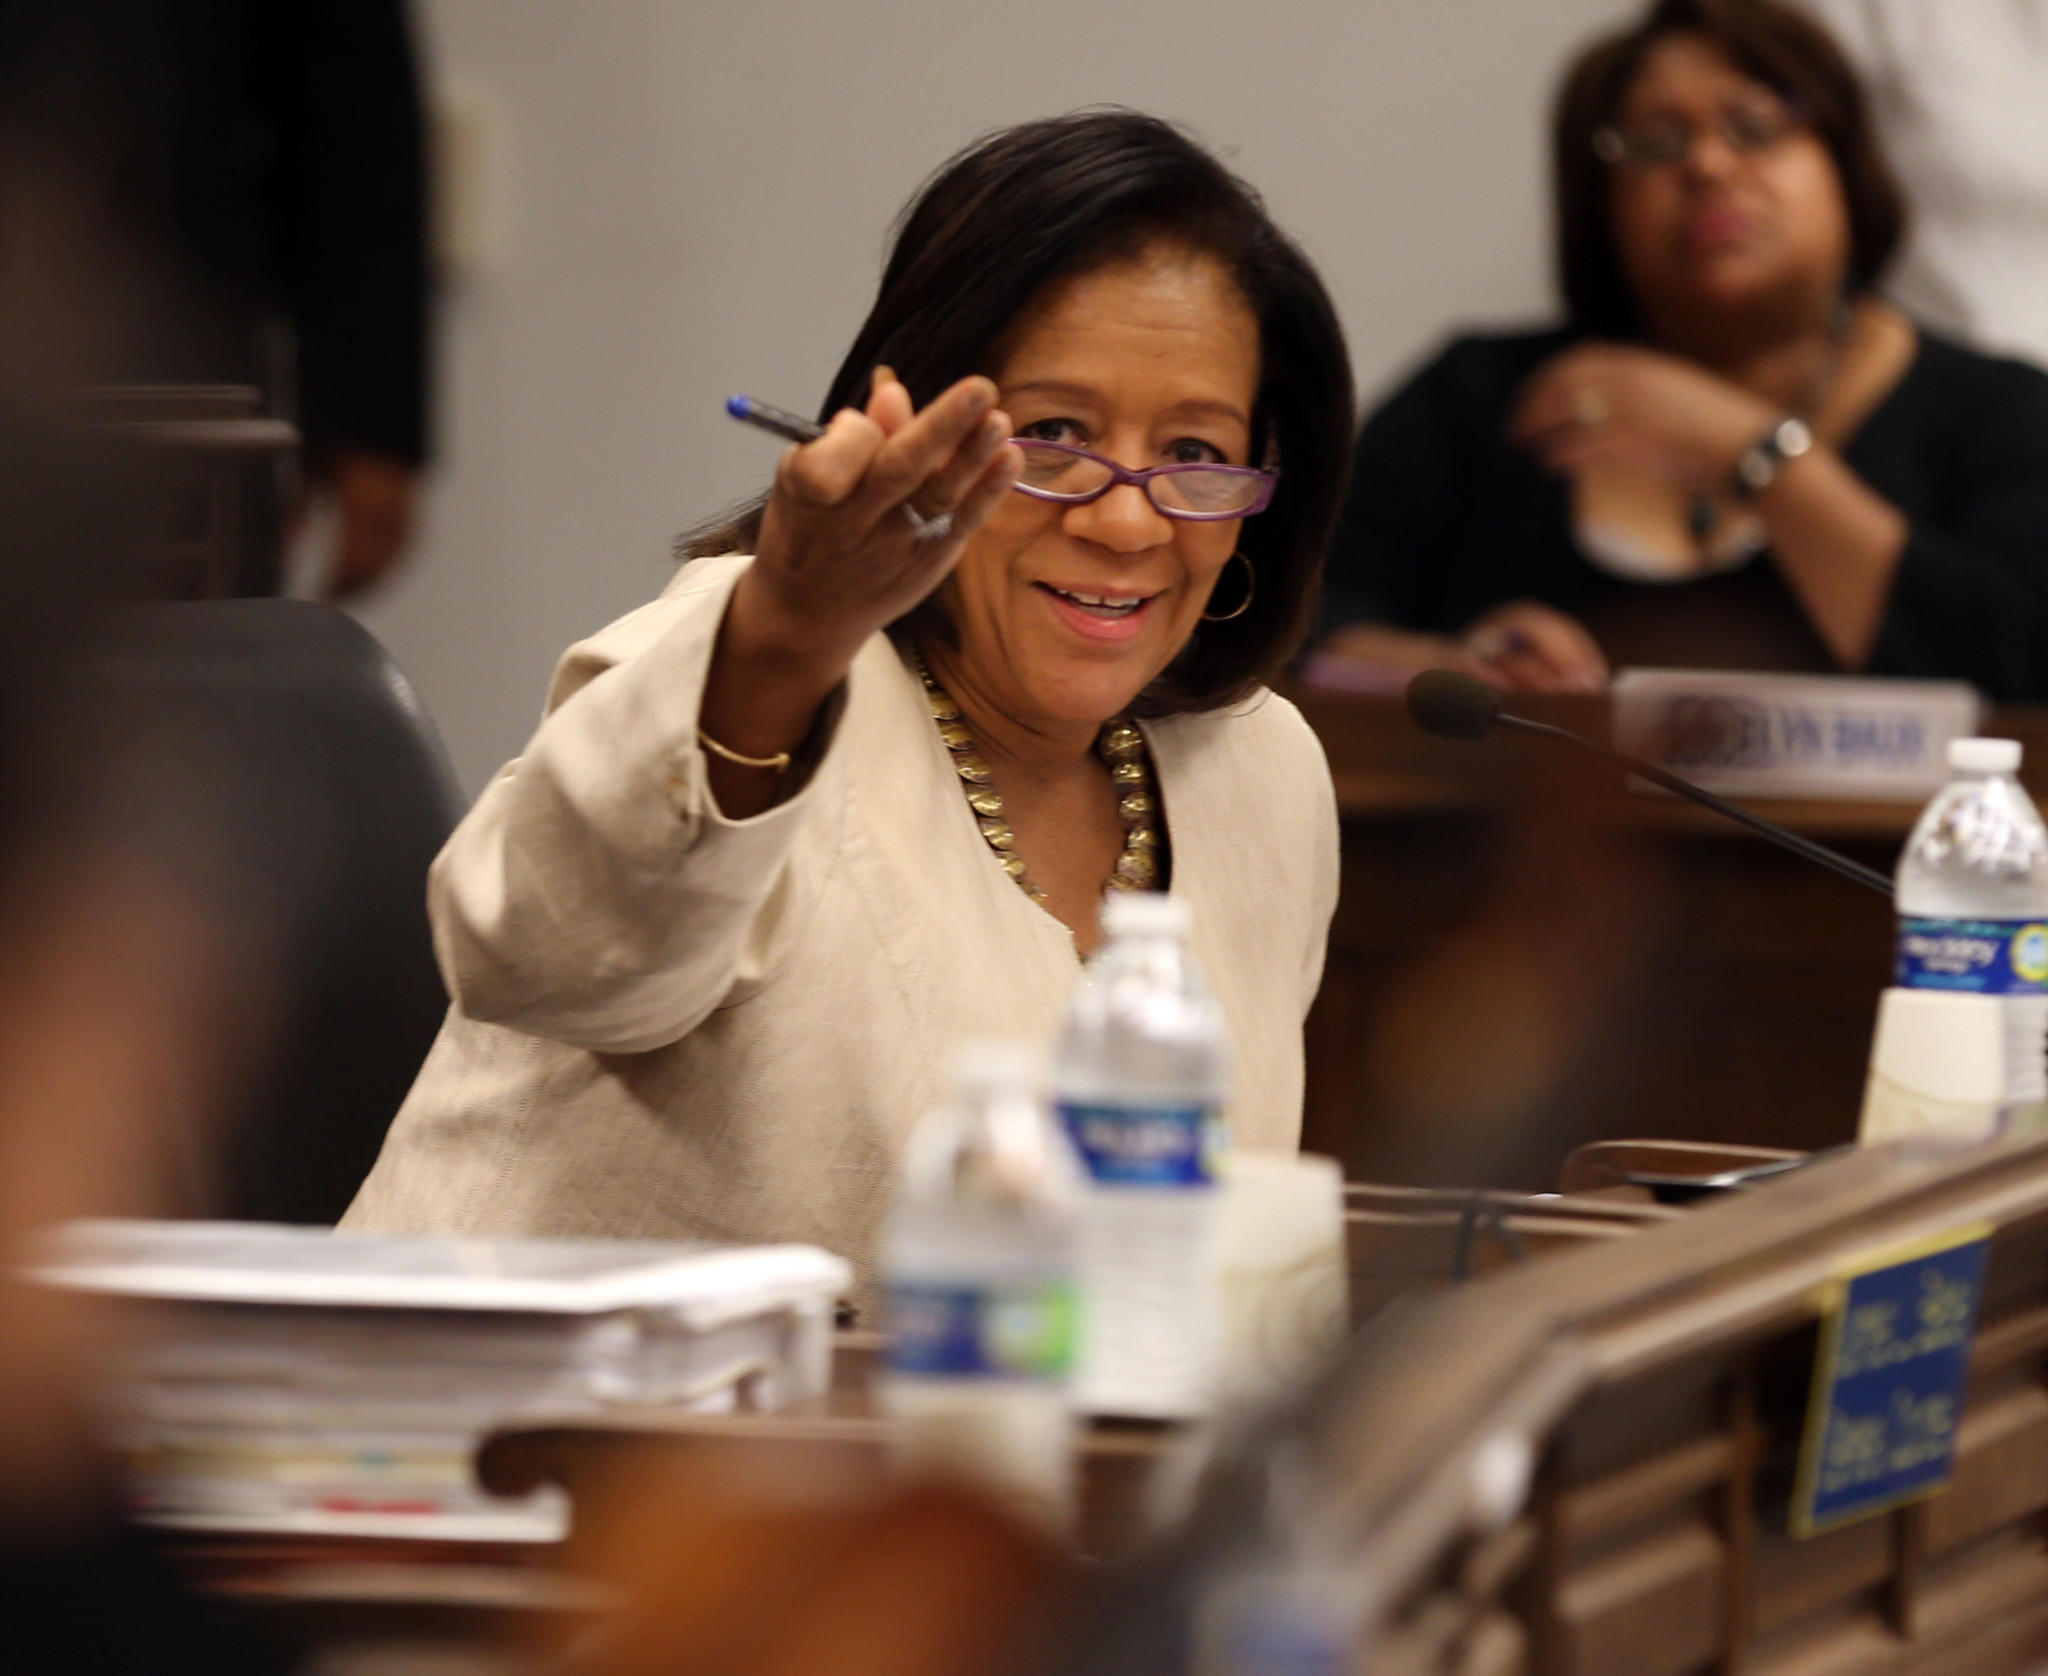 CEO of Chicago Public Schools Barbara Byrd-Bennett speaks at today's Chicago Board of Education Meeting on Wednesday.